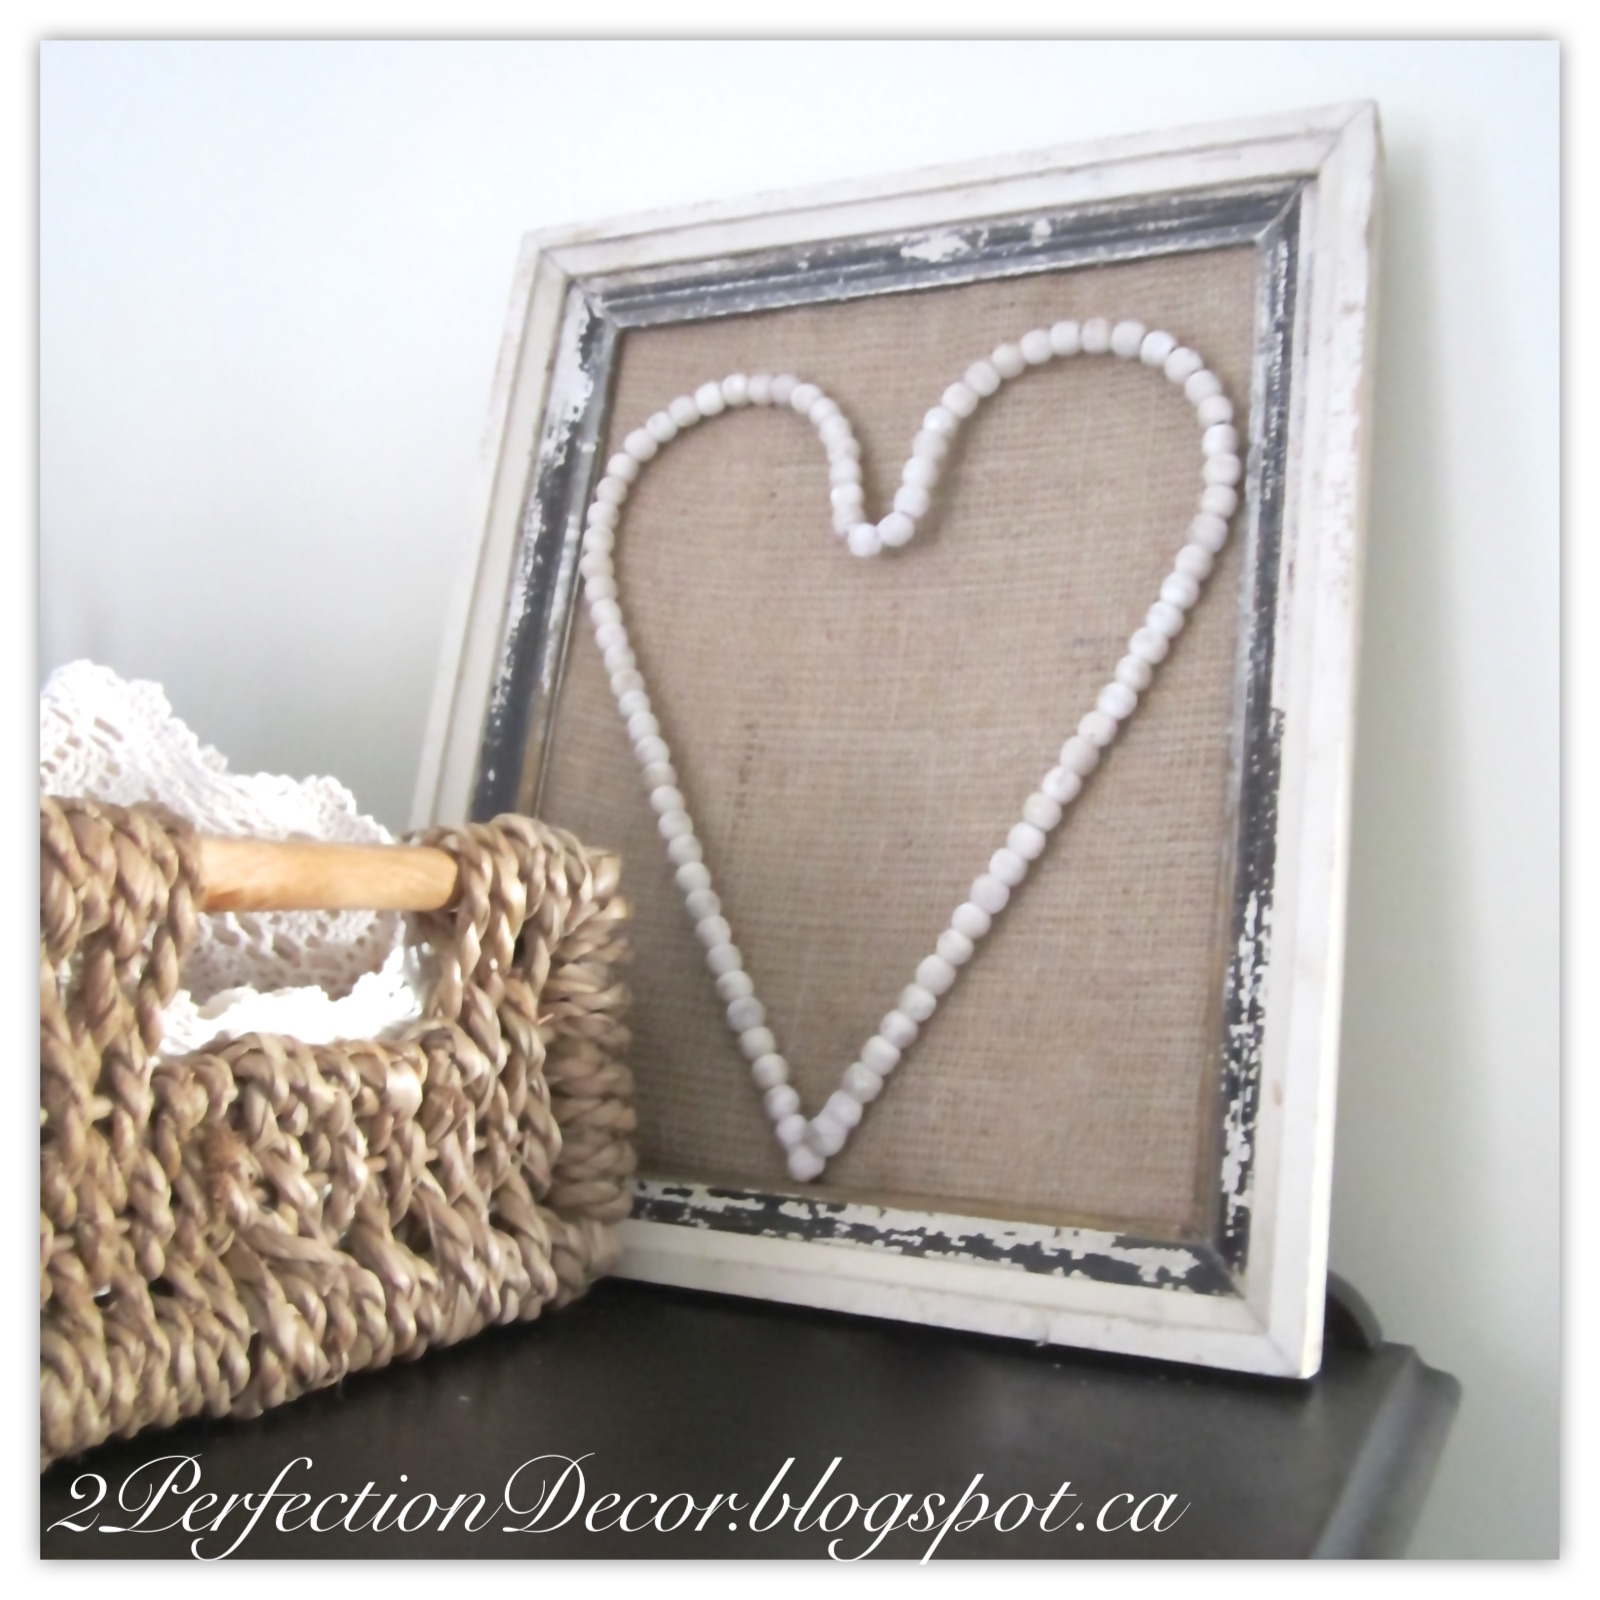 Spectacular And lastly I used this antique frame to make the wall piece ugrand er u Adding a simple frame around metal ornate grate helped fill the empty space on our